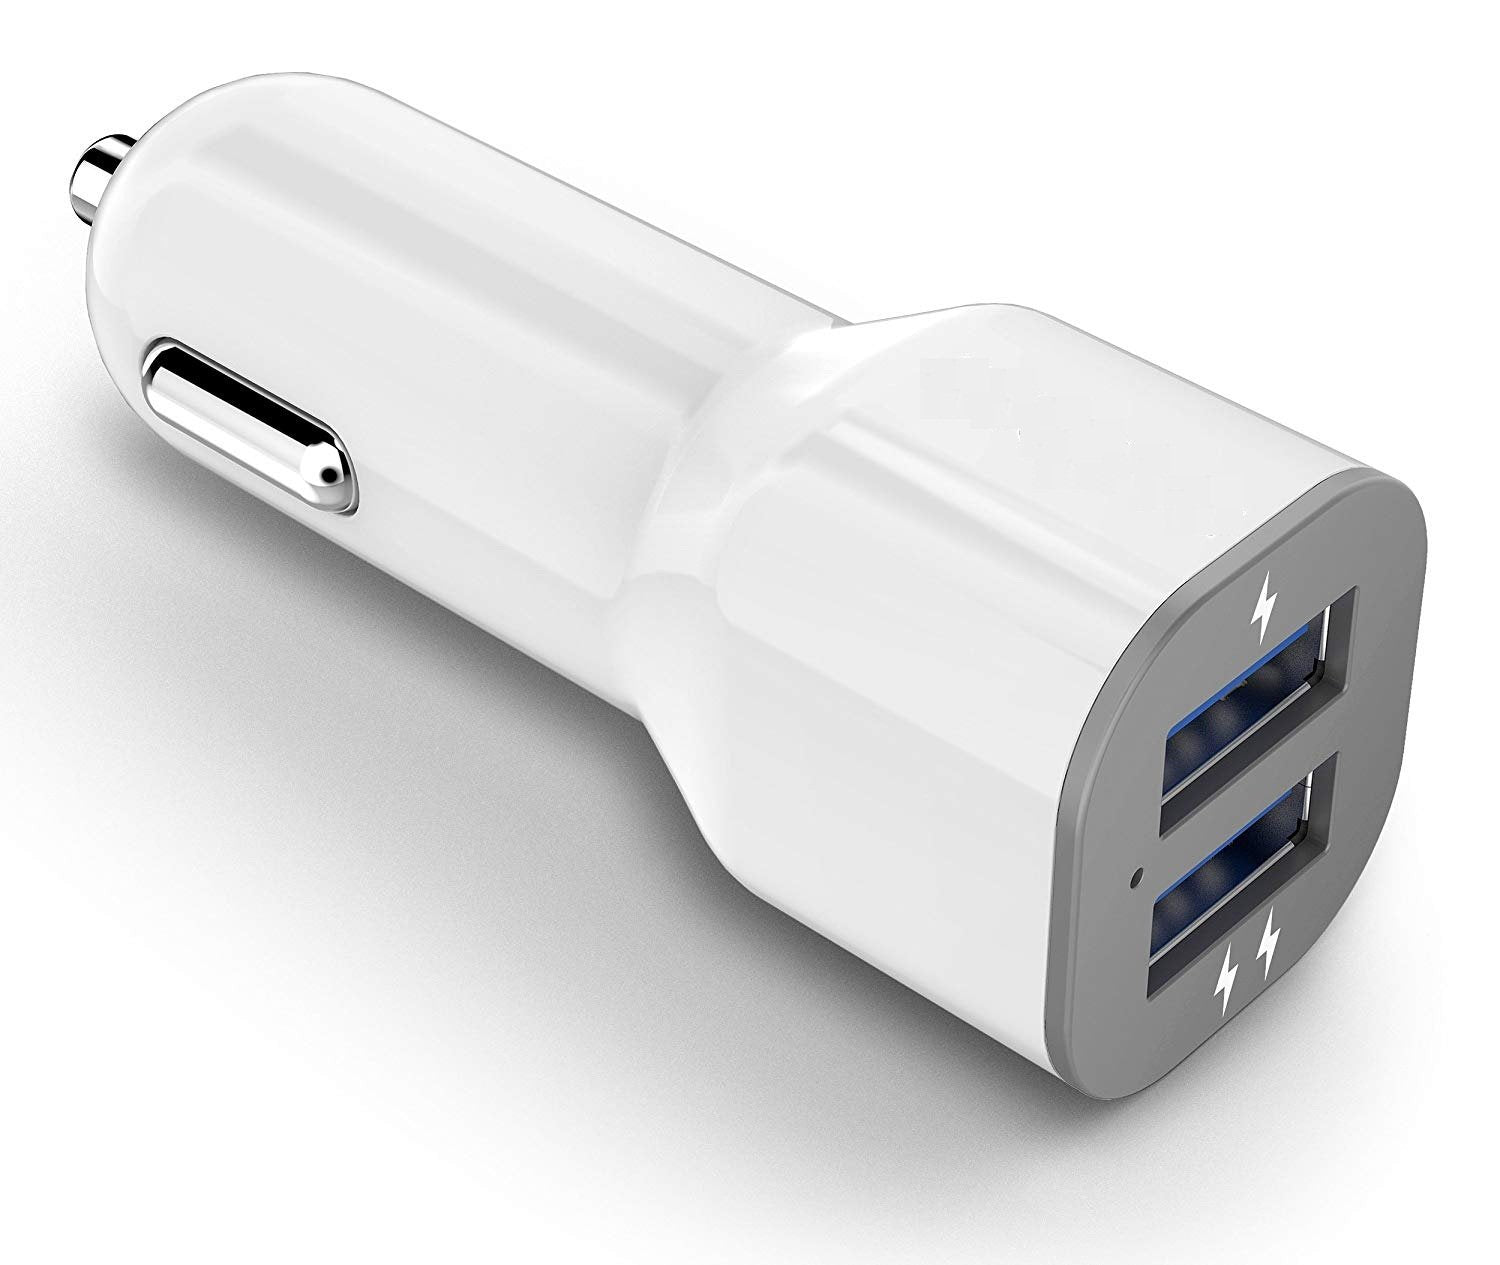 3.1A Dual Usb Ports Fast Universal Charging Car Charger Adapter